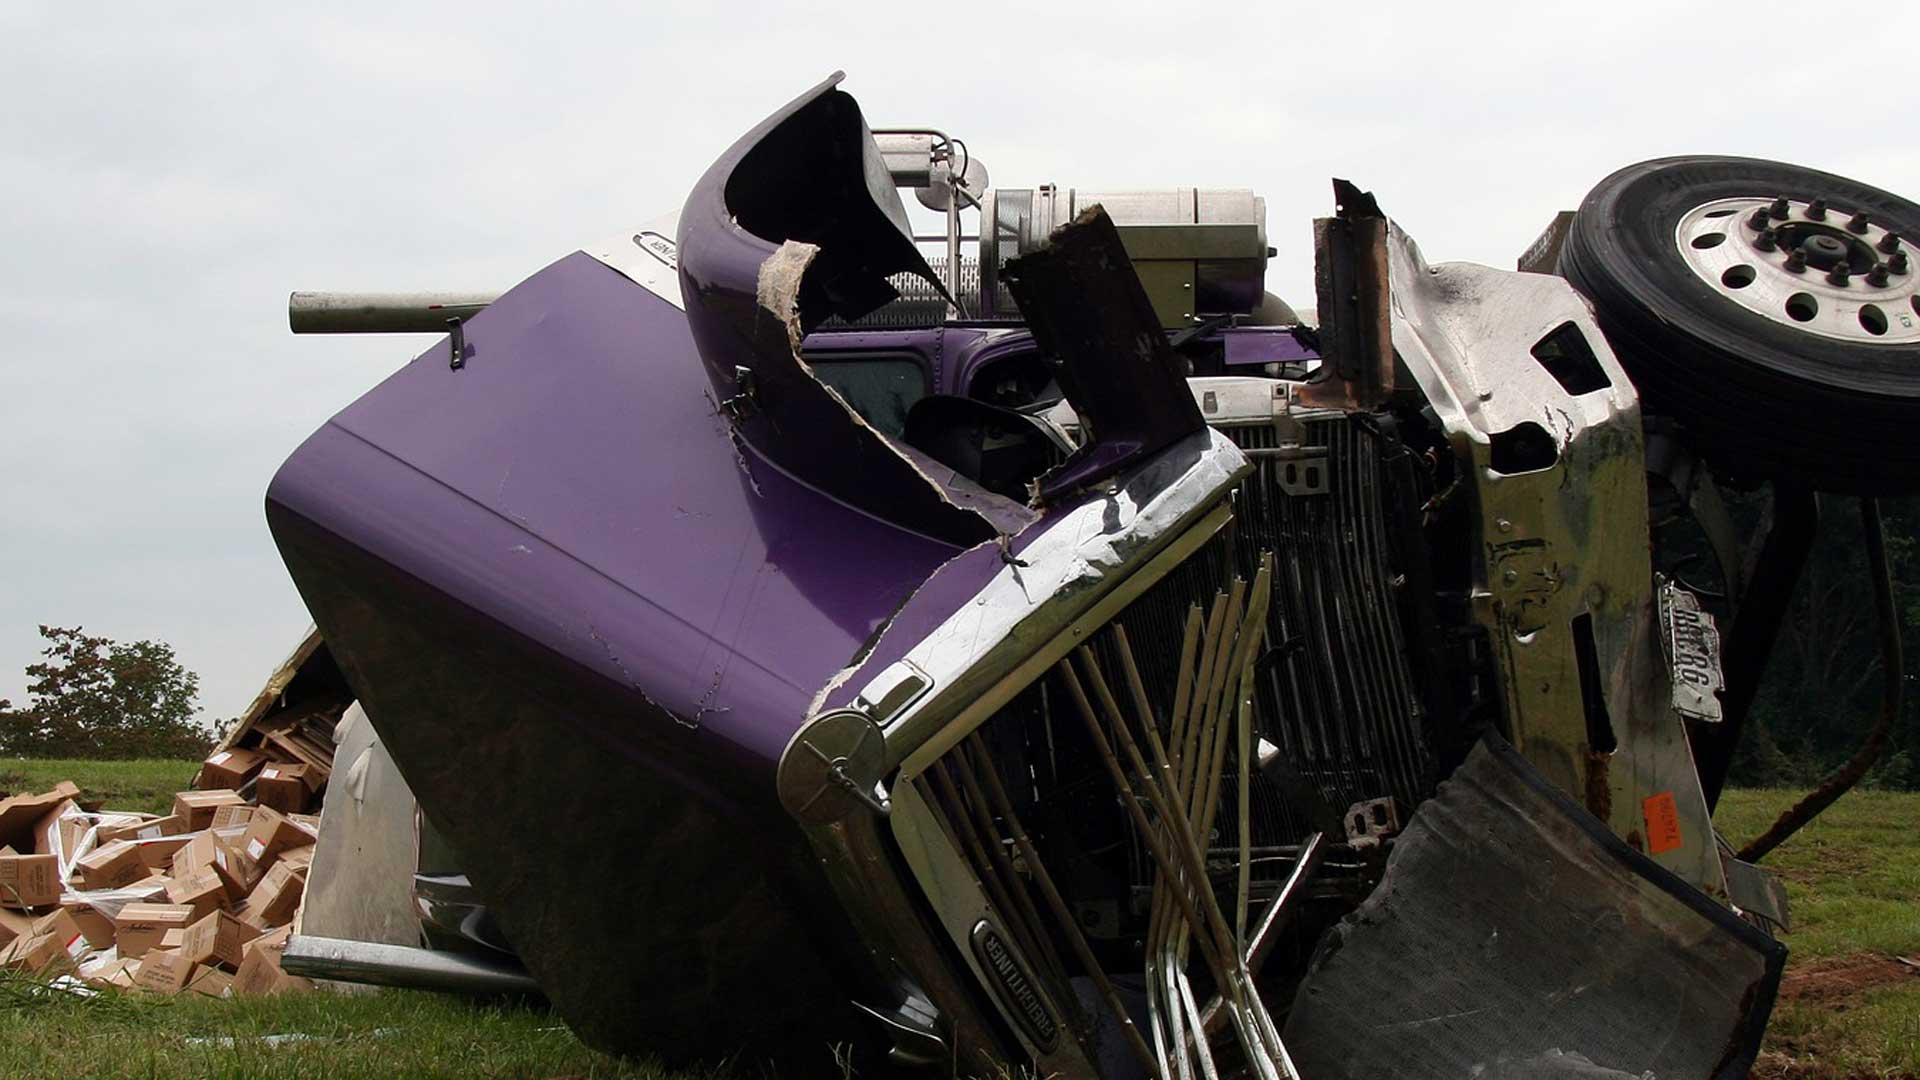 Big Truck Accident Lawyer in Kentucky